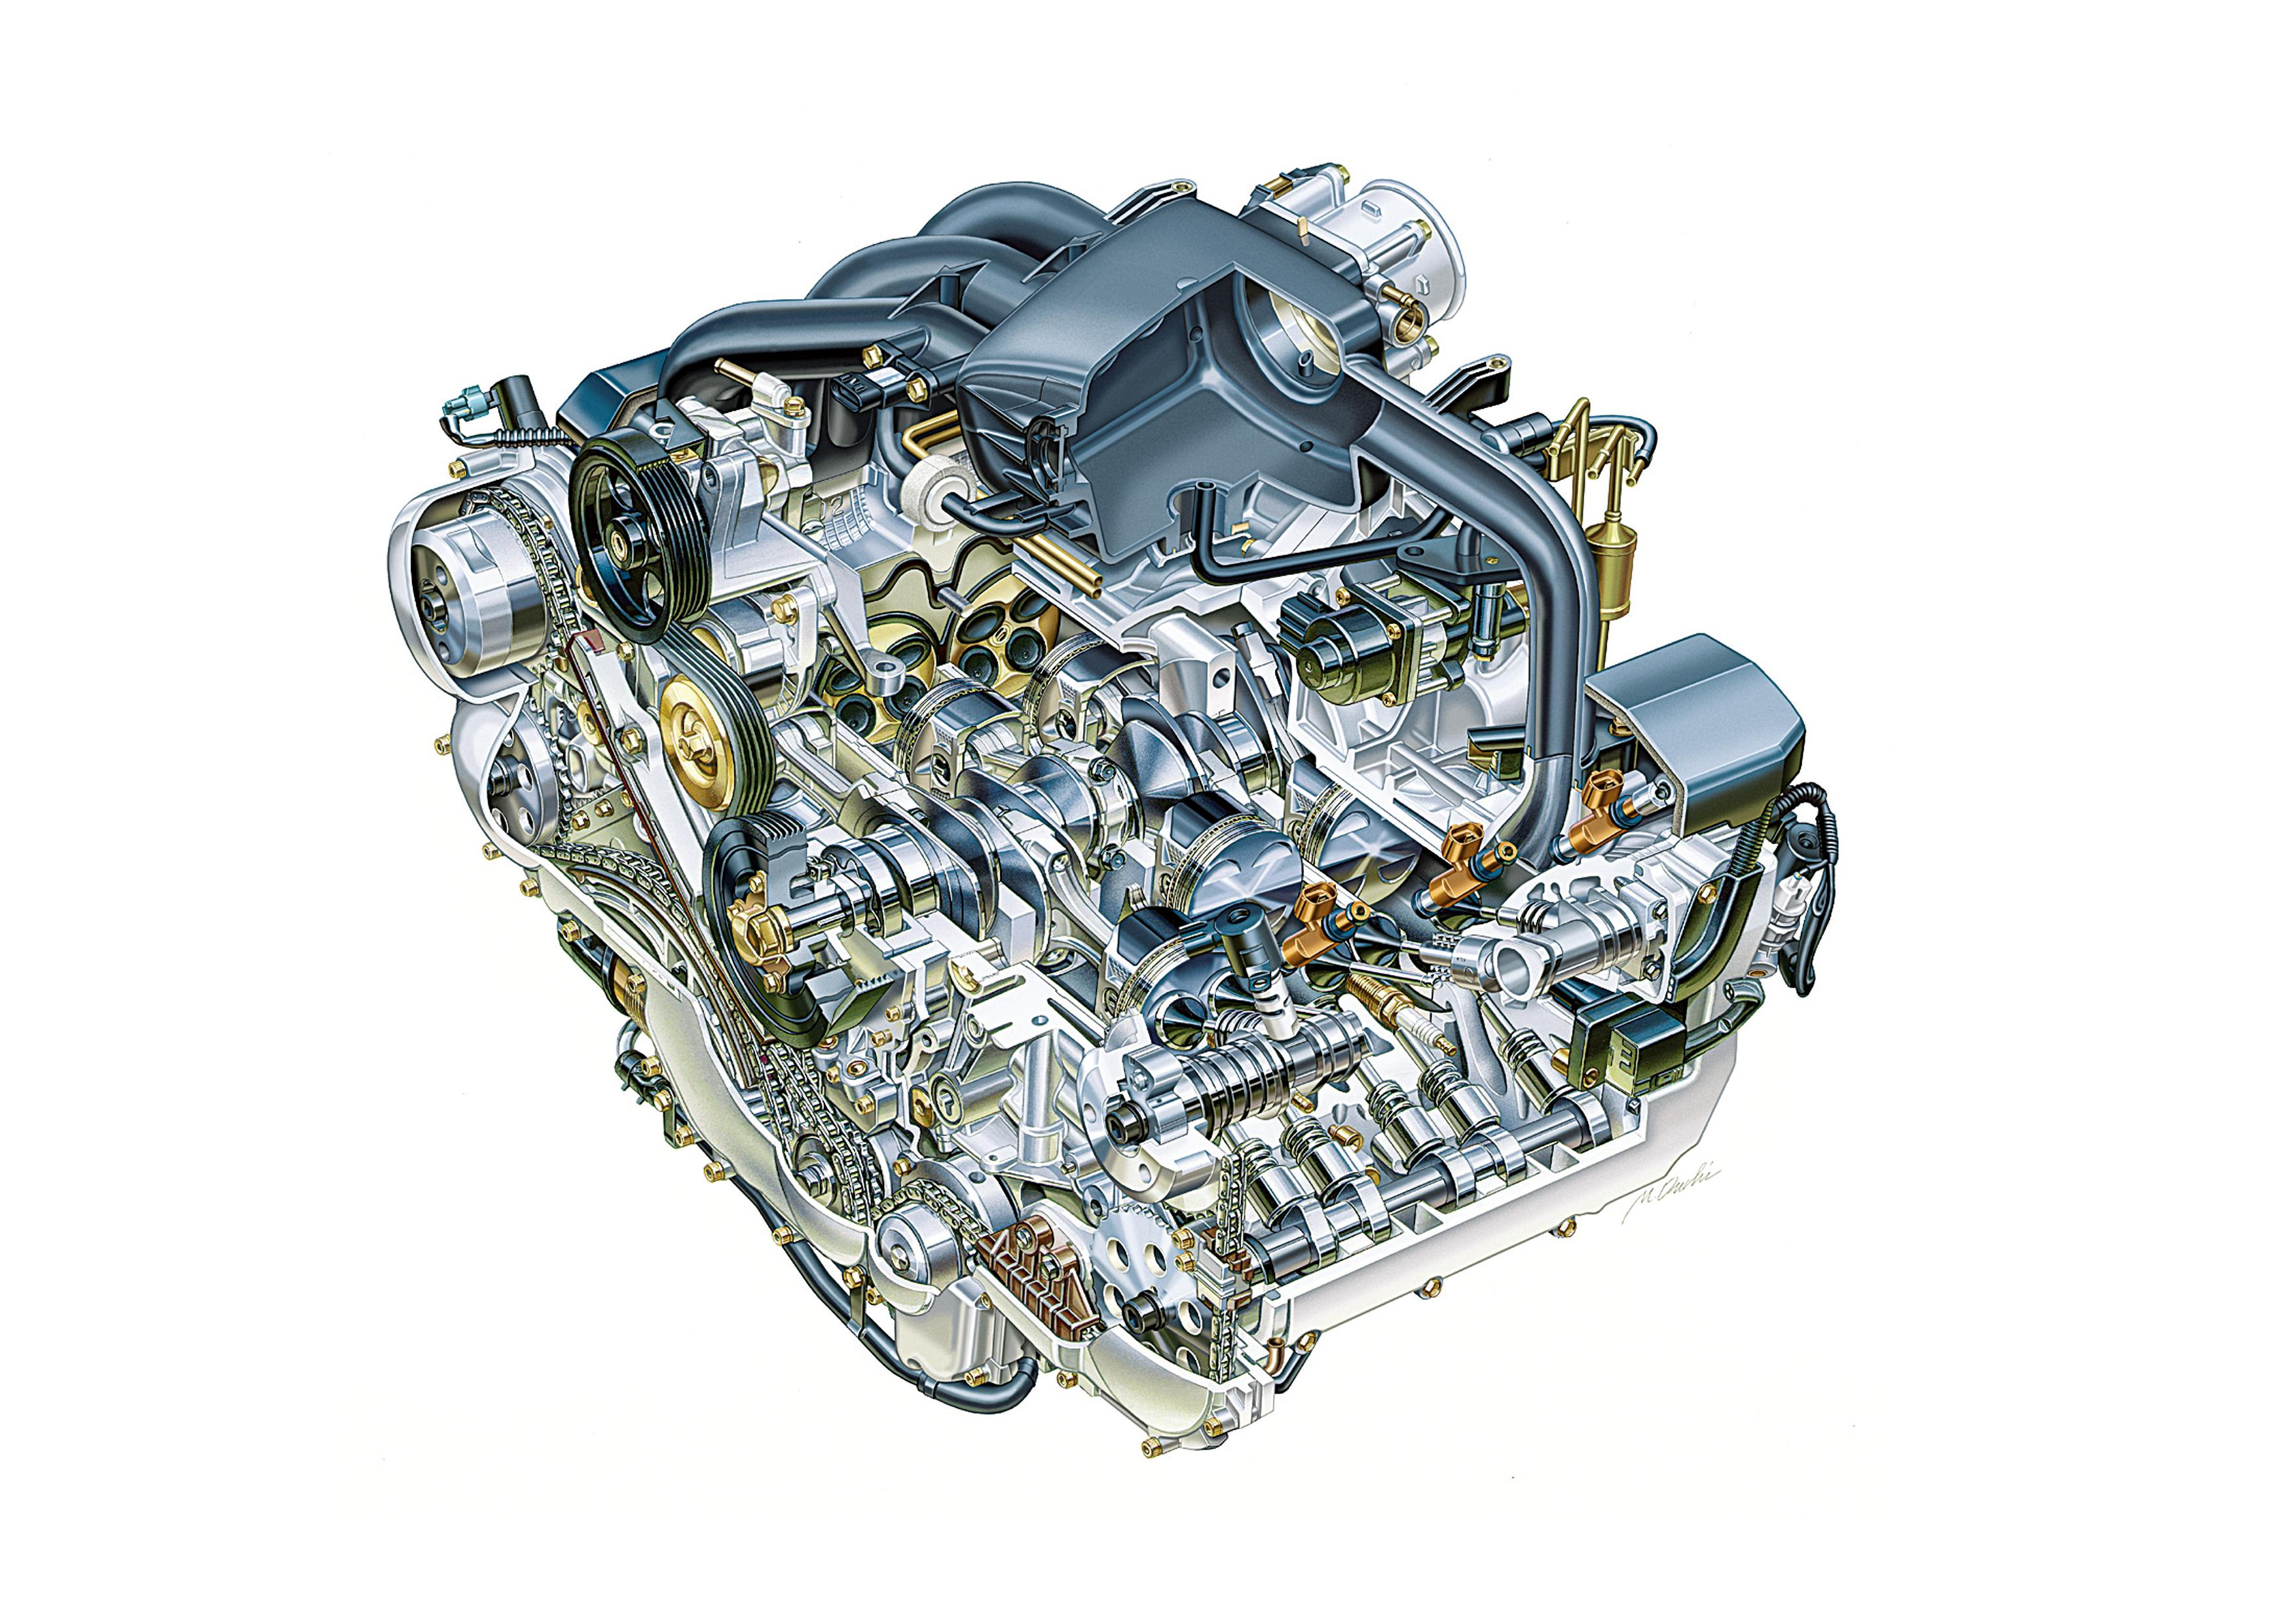 2007 Subaru Outback Top Speed Timing Chain